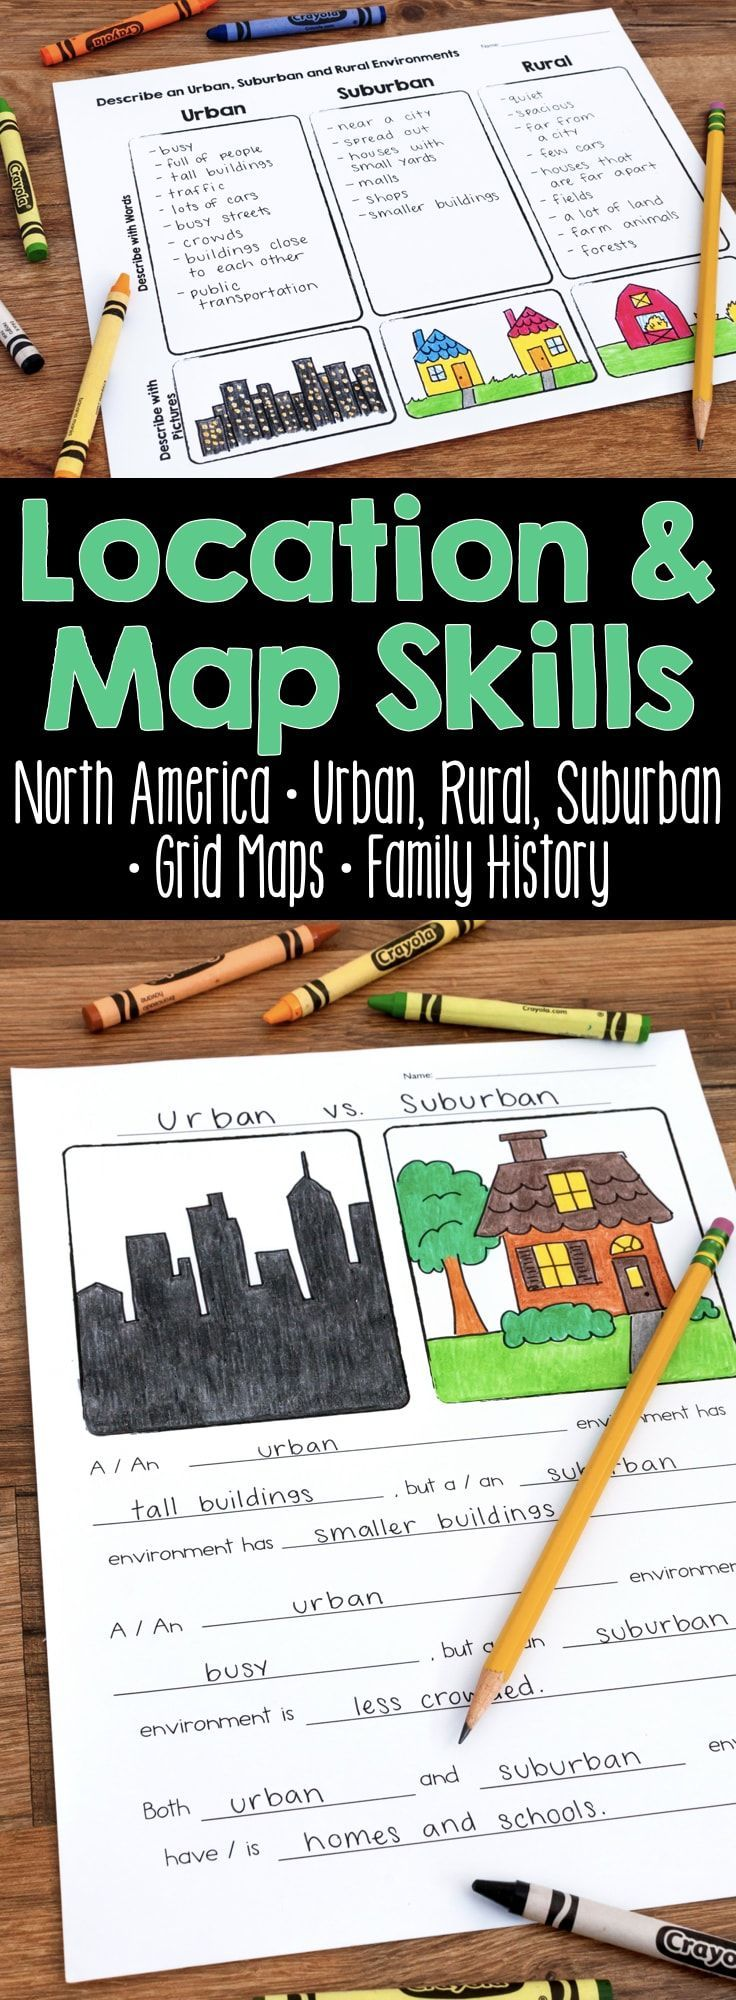 A Location and Map Skills Social Studies